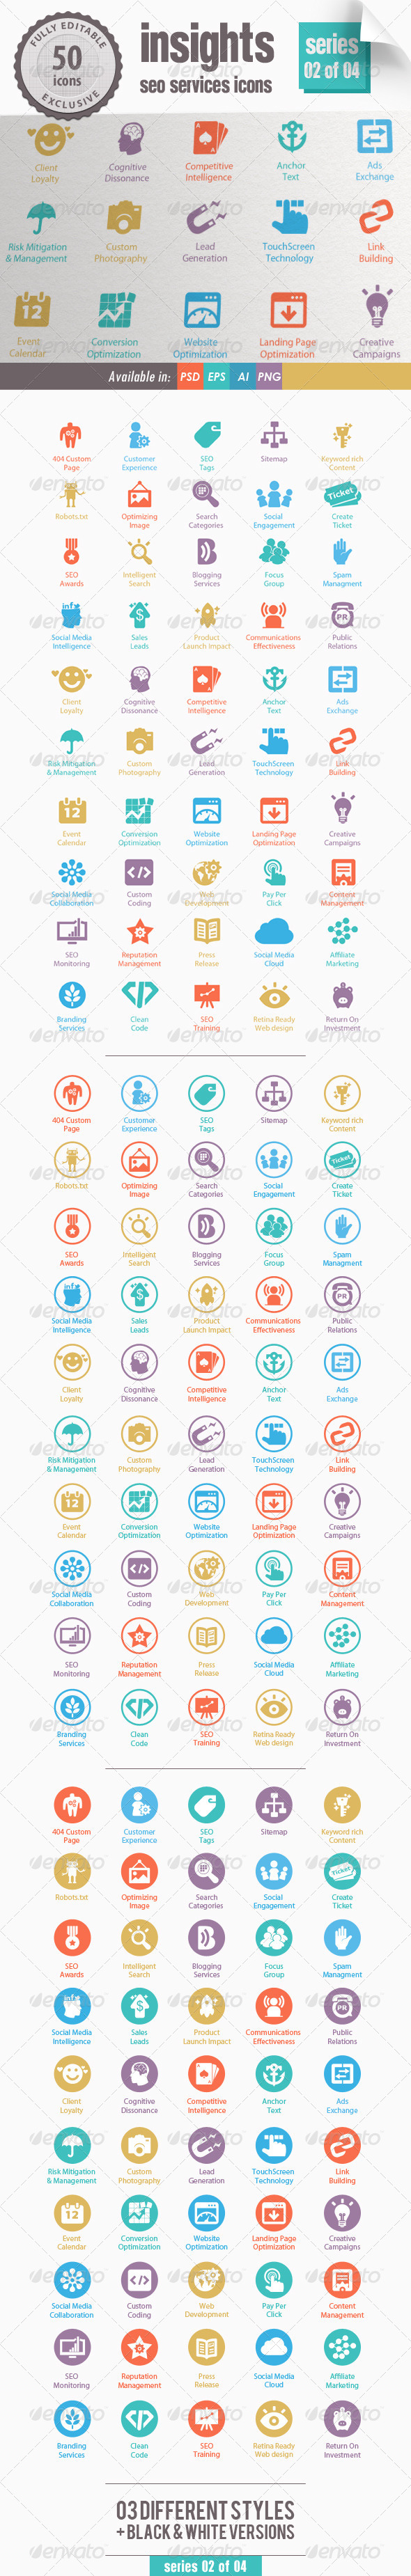 Insights SEO Services Icons - Series 02 of 04 - Web Icons